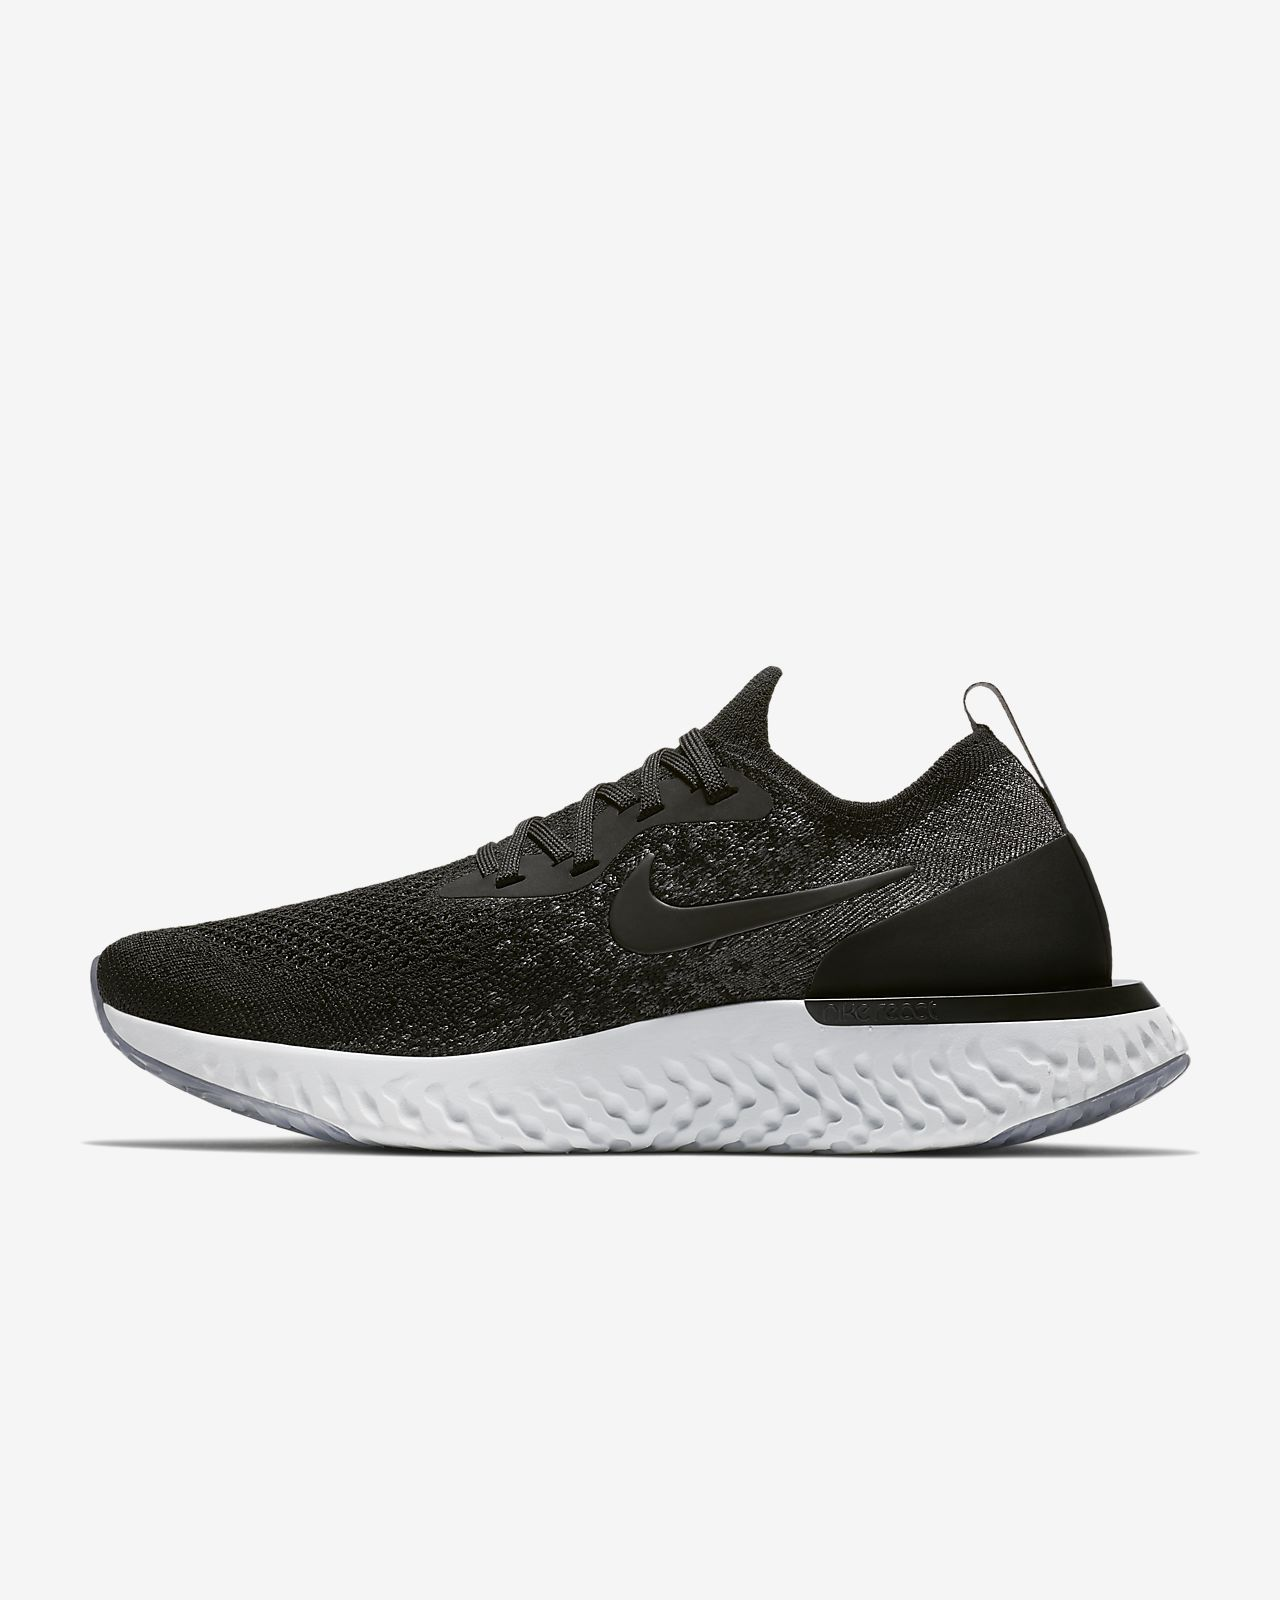 buy cheap discounts buy cheap browse Nike Epic React Flyknit Black Running Shoes 100% original cheap price sale clearance sale lowest price FDwMrZN